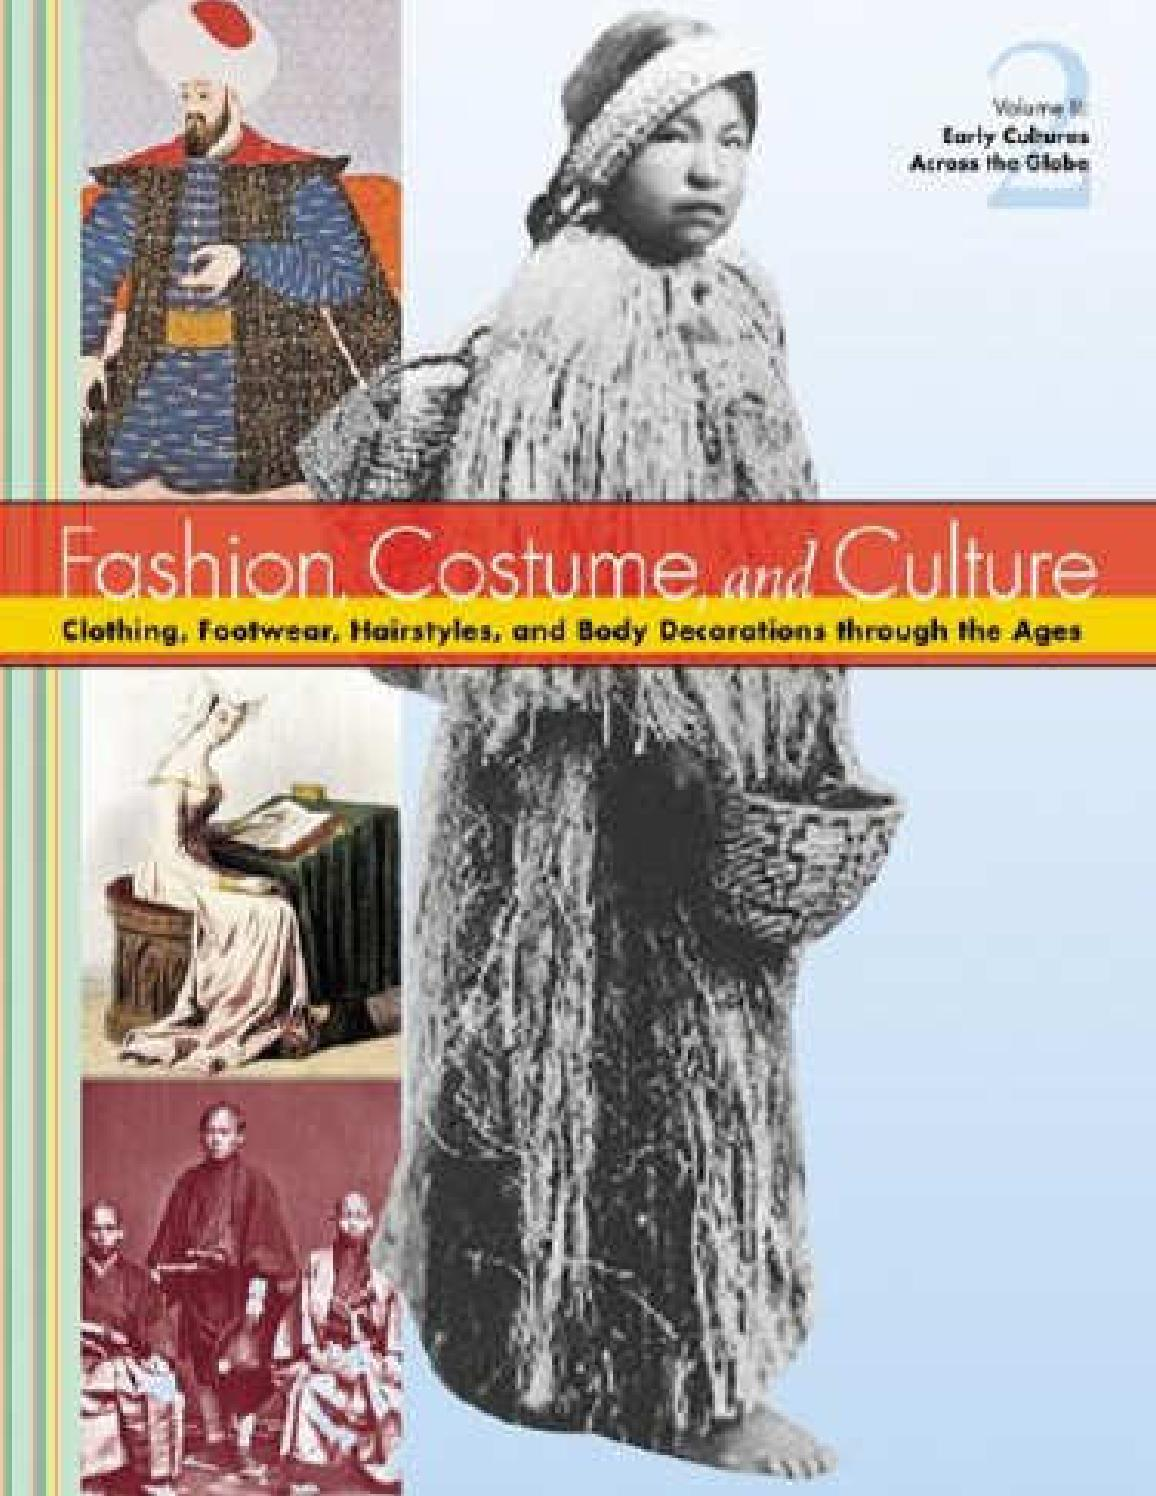 33955aa56 Fashion, costume, and culture v2 by ThuyDuong Le - issuu